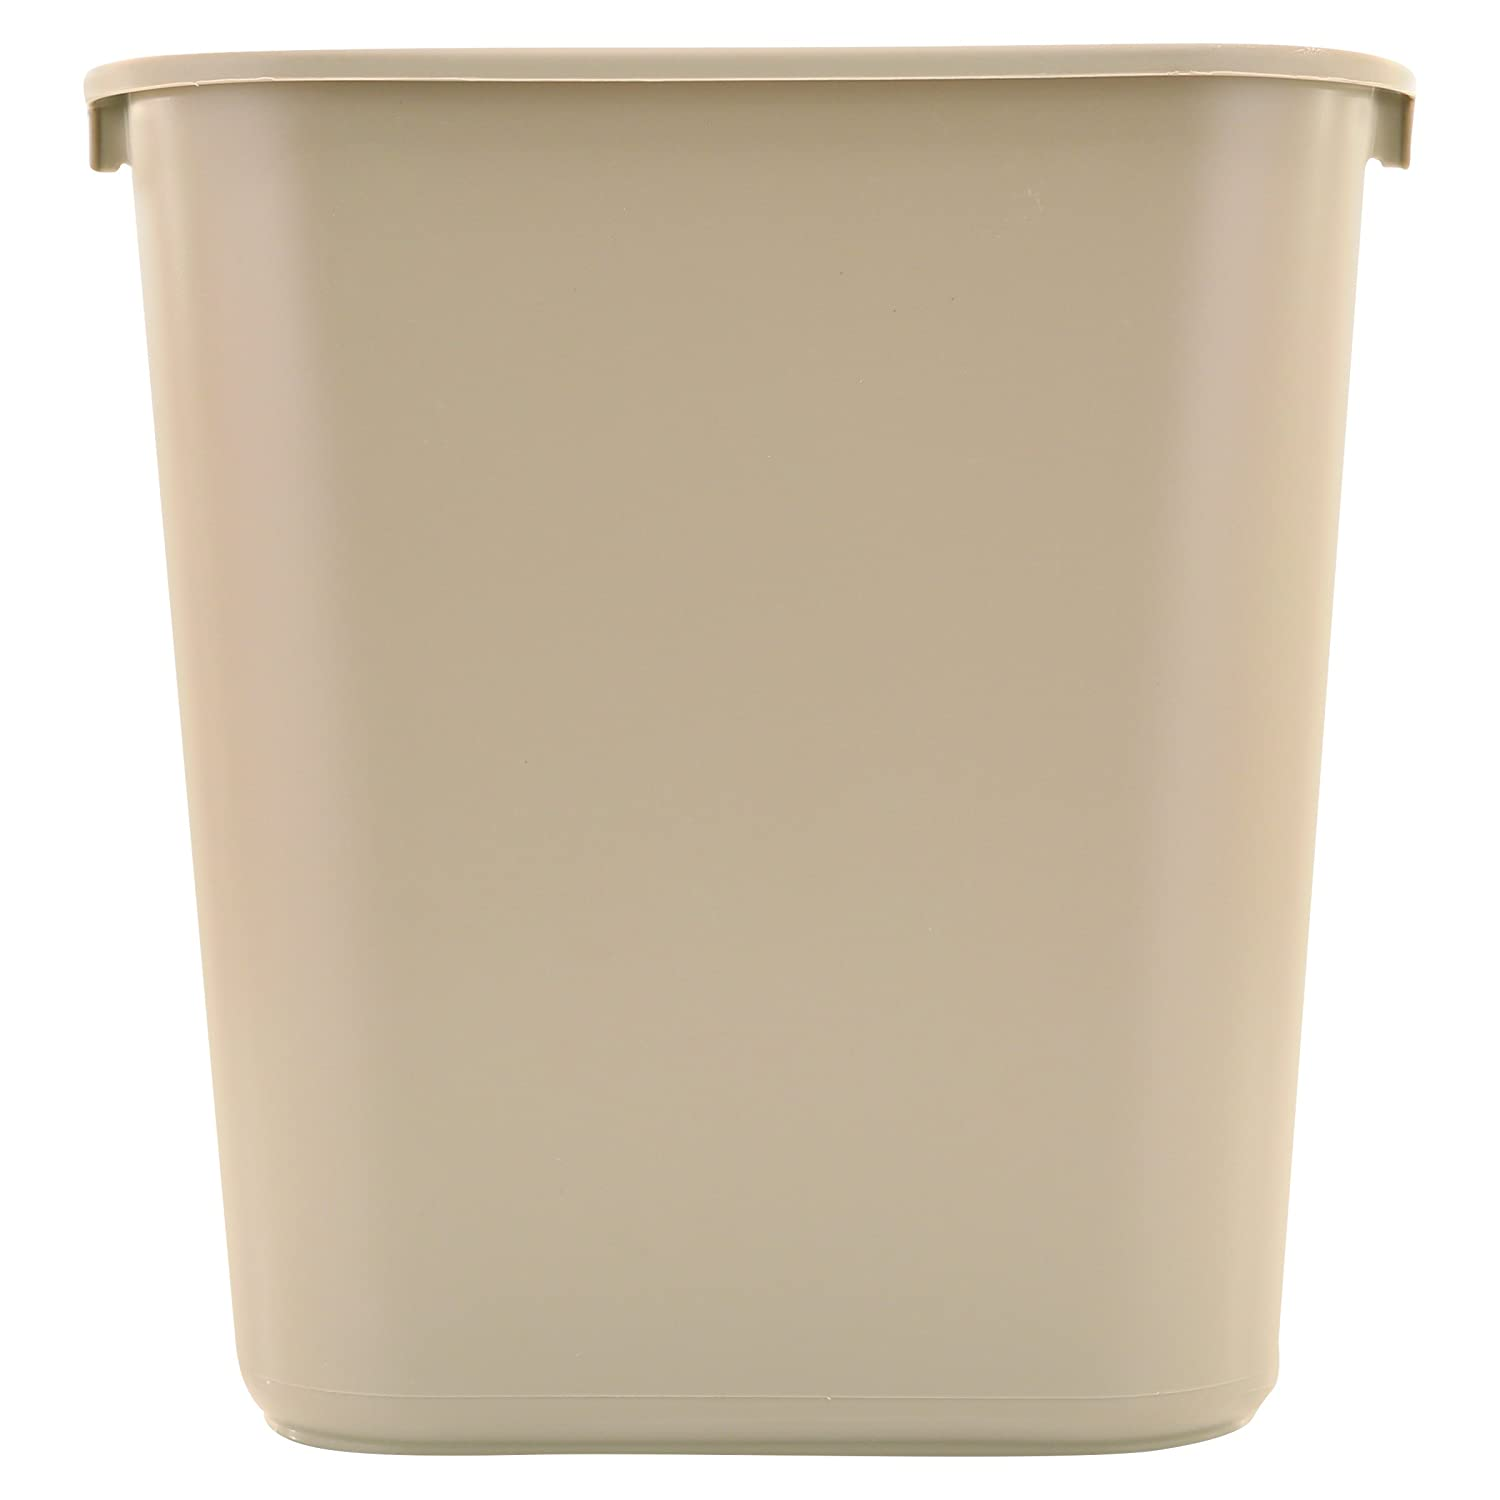 Rubbermaid Commercial Deskside Wastebasket, 3.5-gallon, Small, Black (FG295500BLA) (Pack of 12)